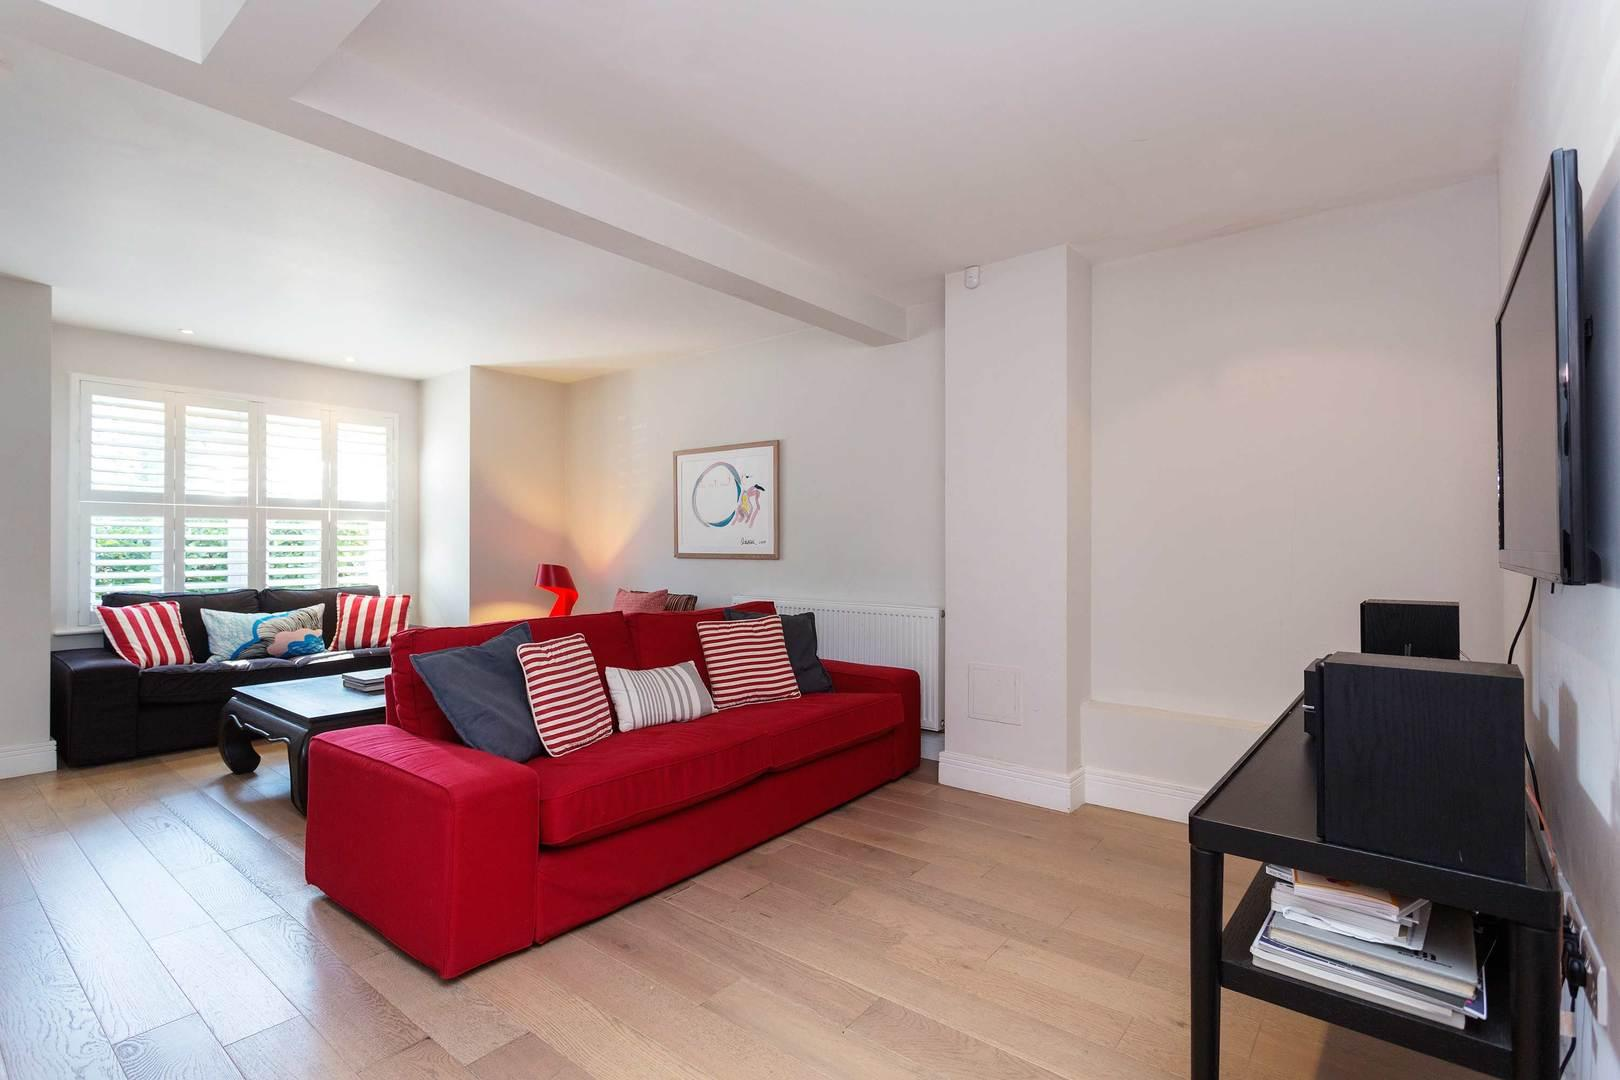 Property Image 2 - Bright Cosy Putney Family Home with Garden by the River